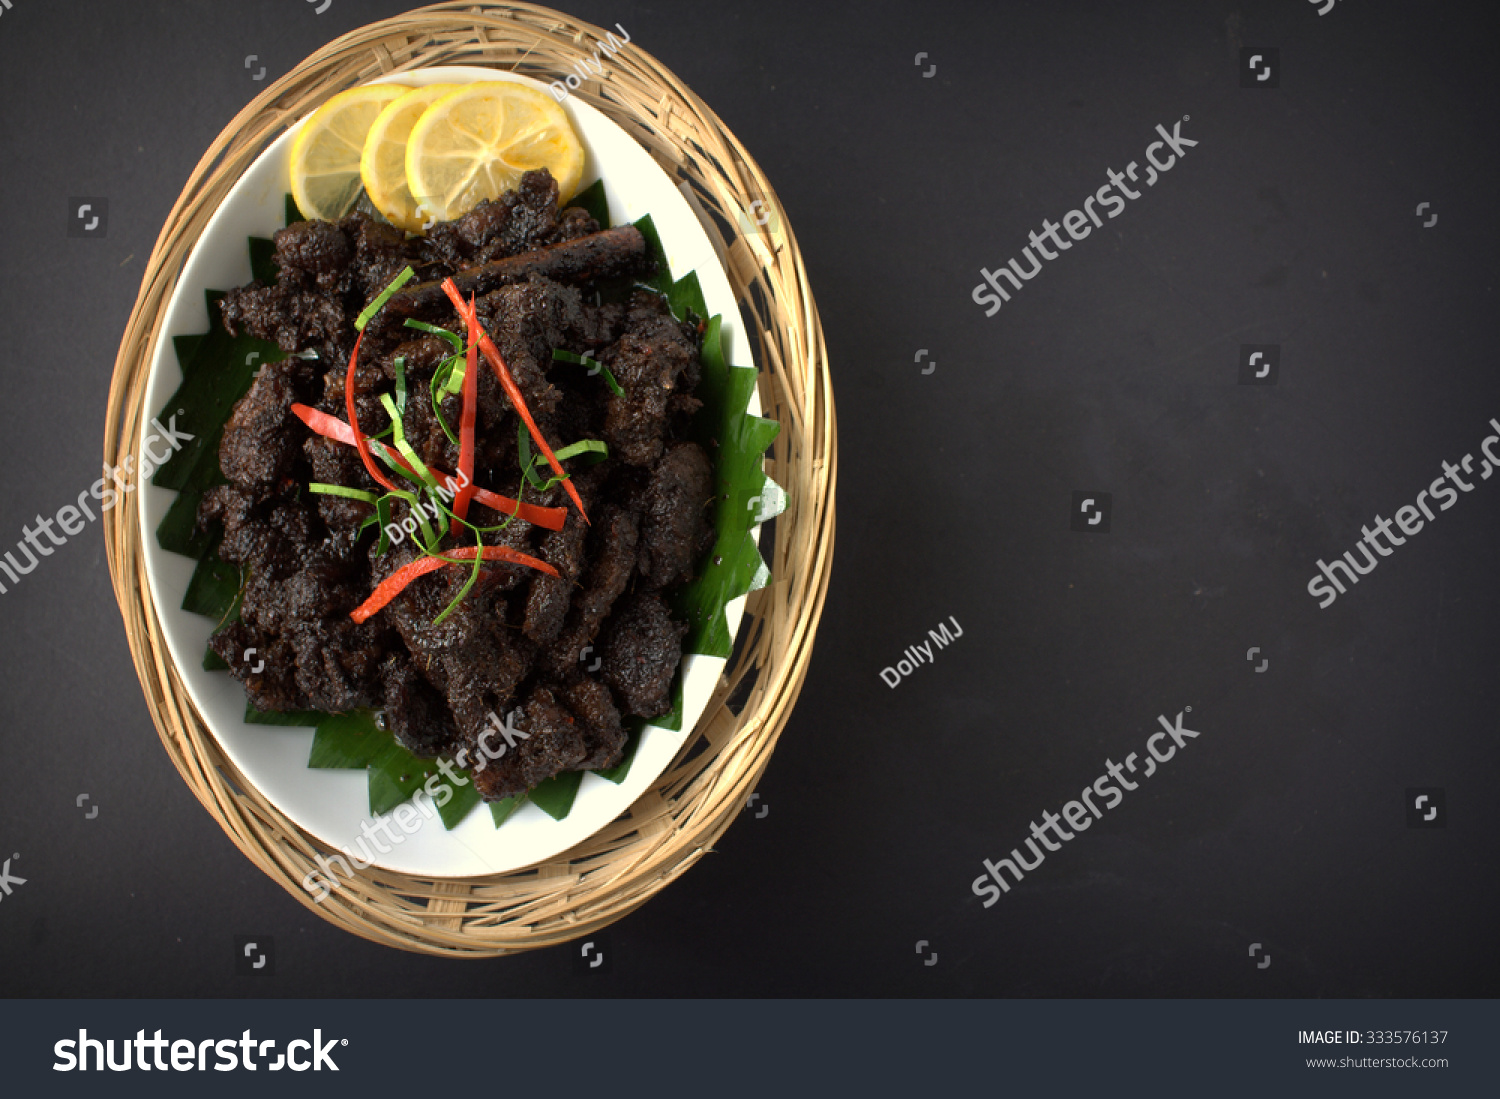 Background Masak Daging Masak Hitam Beef Cooked Soy Stock Photo Edit Now